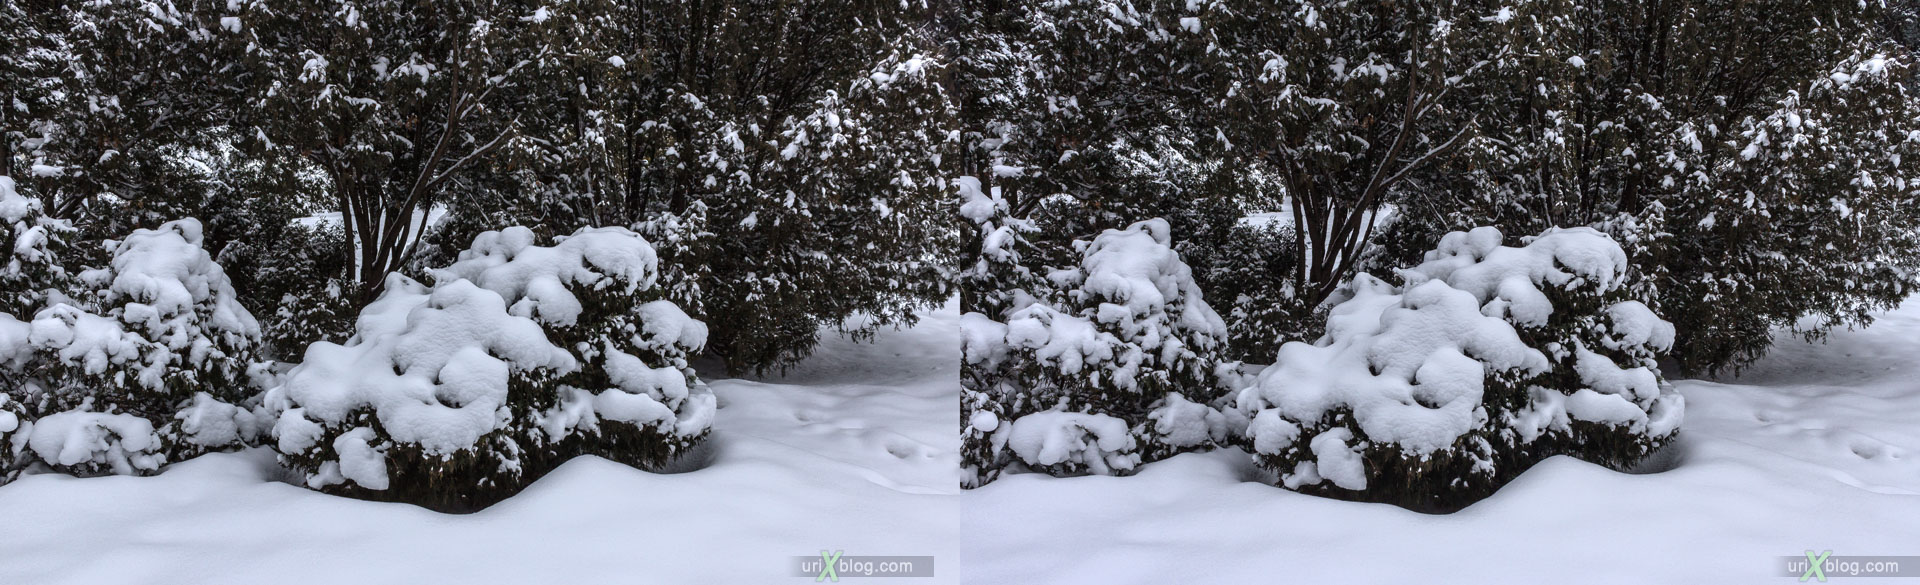 VDNKh, VVTs, park, winter, ice, snow, Moscow, Russia, 3D, stereo pair, cross-eyed, crossview, cross view stereo pair, stereoscopic, 2015